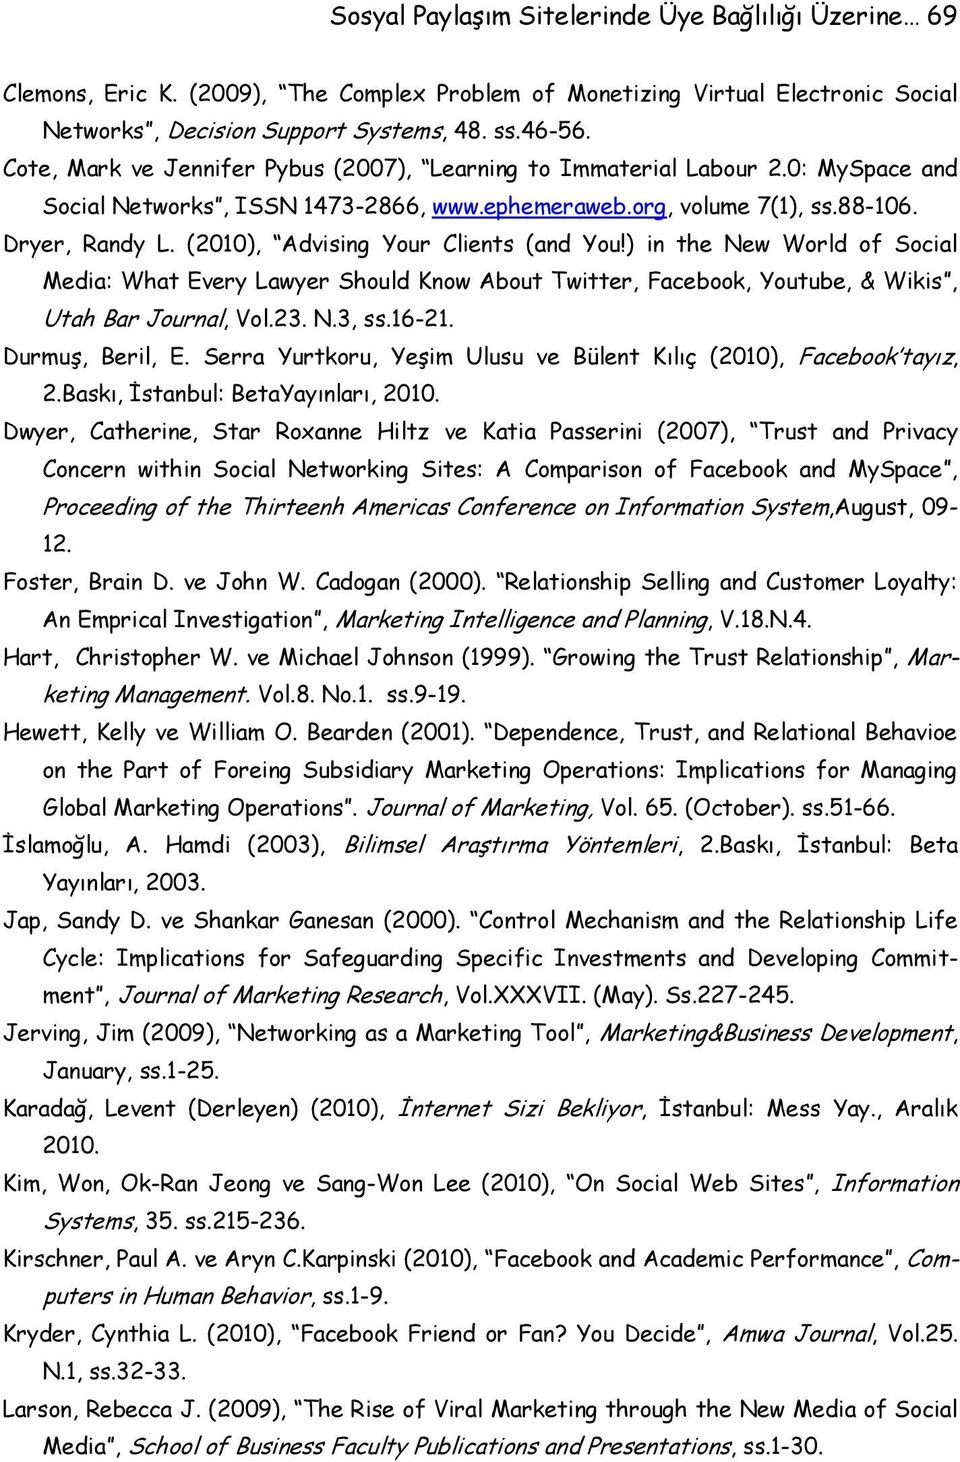 (2010), Advising Your Clients (and You!) in the New World of Social Media: What Every Lawyer Should Know About Twitter, Facebook, Youtube, & Wikis, Utah Bar Journal, Vol.23. N.3, ss.16-21.